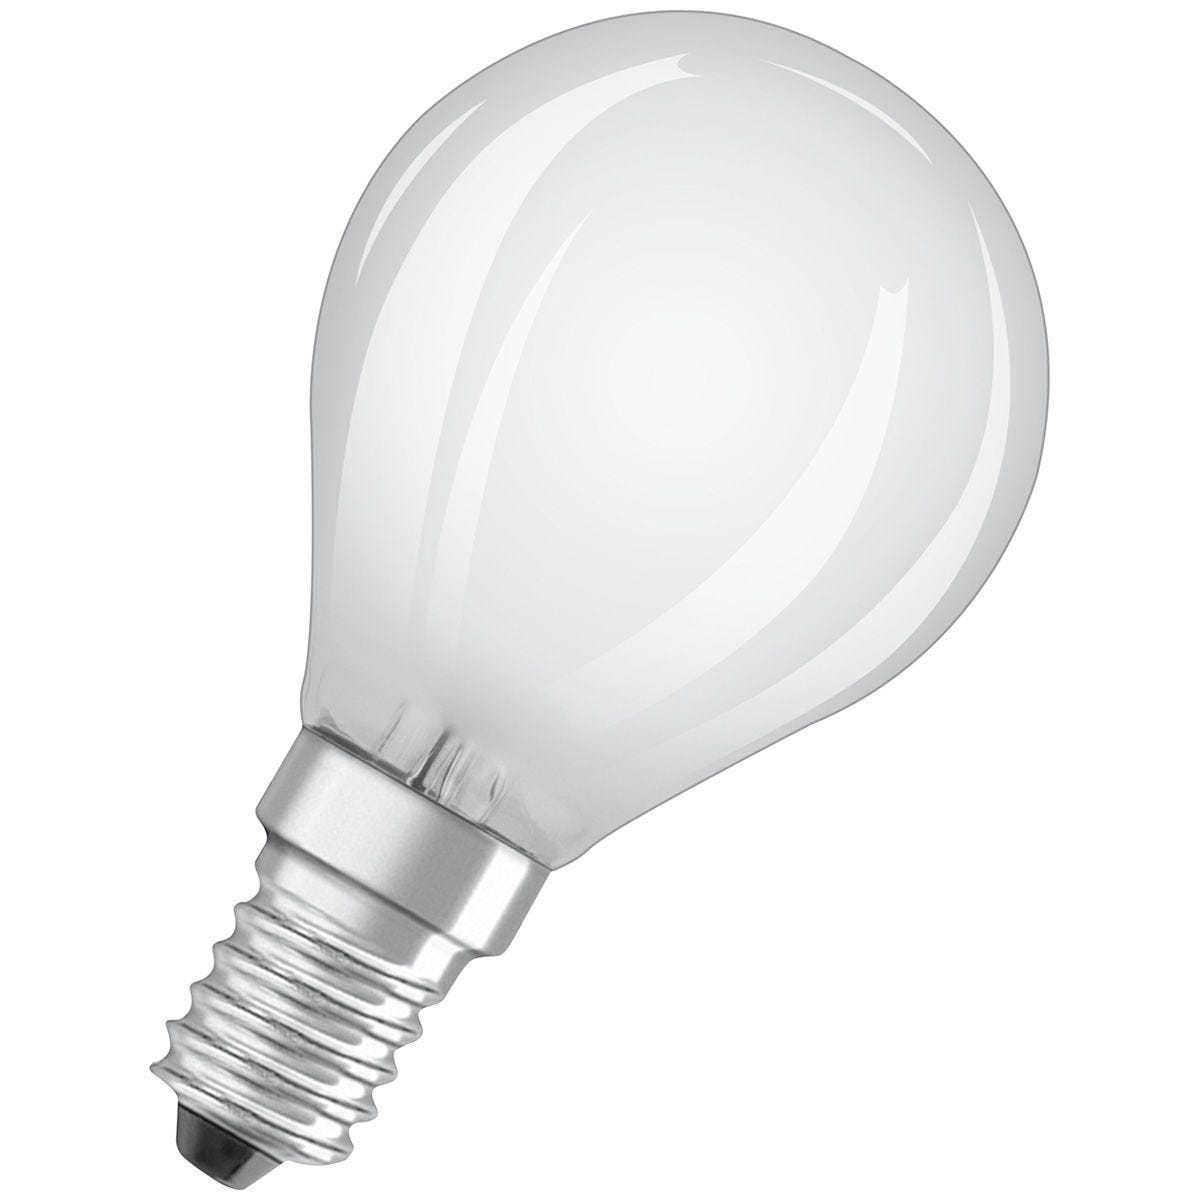 Osram Frosted 40W Equivalent LED Golf Ball SES Bulbs, Warm White - 3 Pack